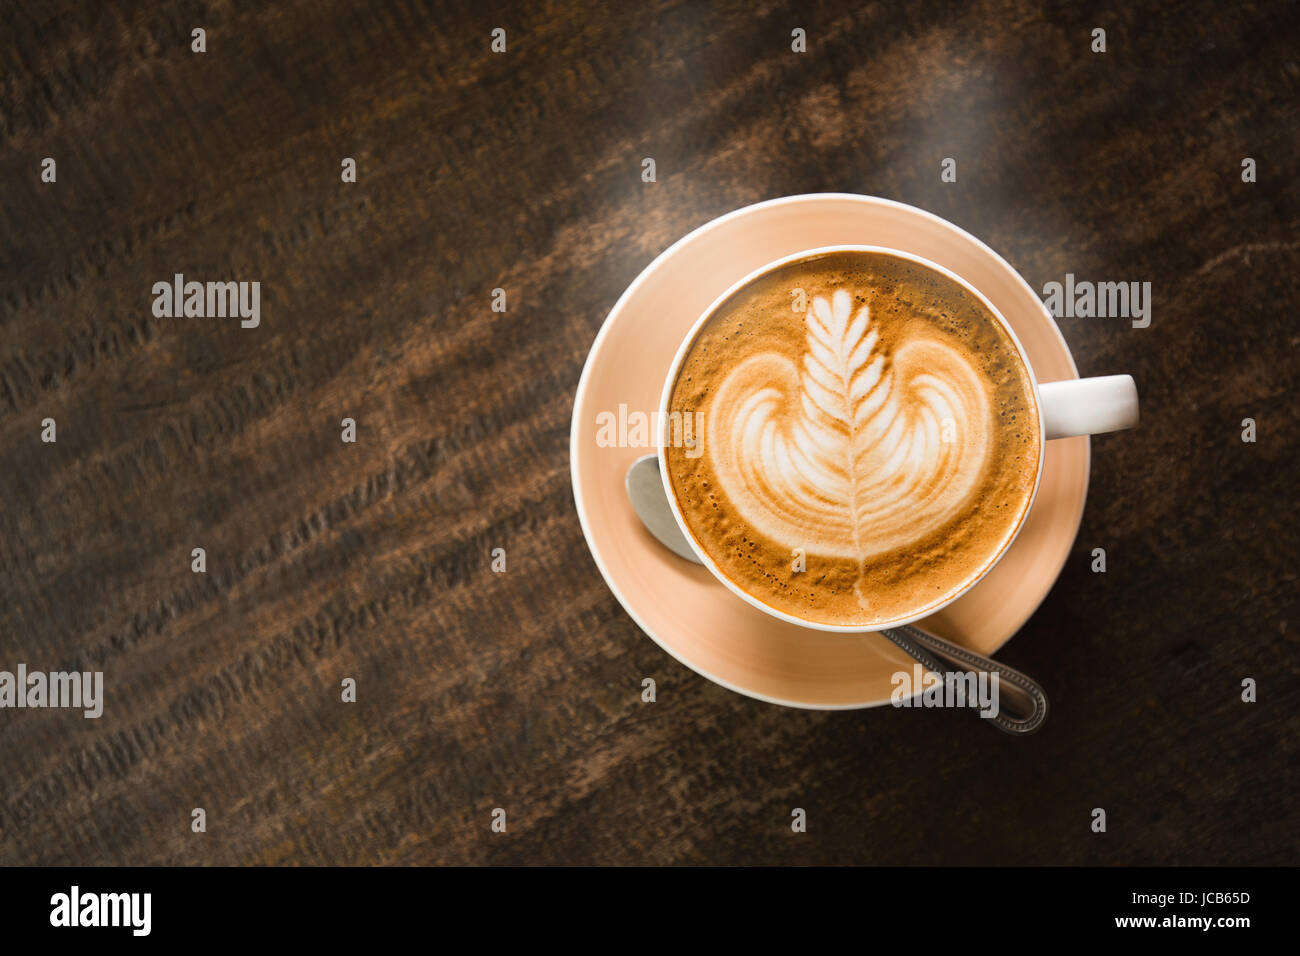 Close focus on cup of hot cappuccino coffee with latte art on dark brown wood table. - Stock Image